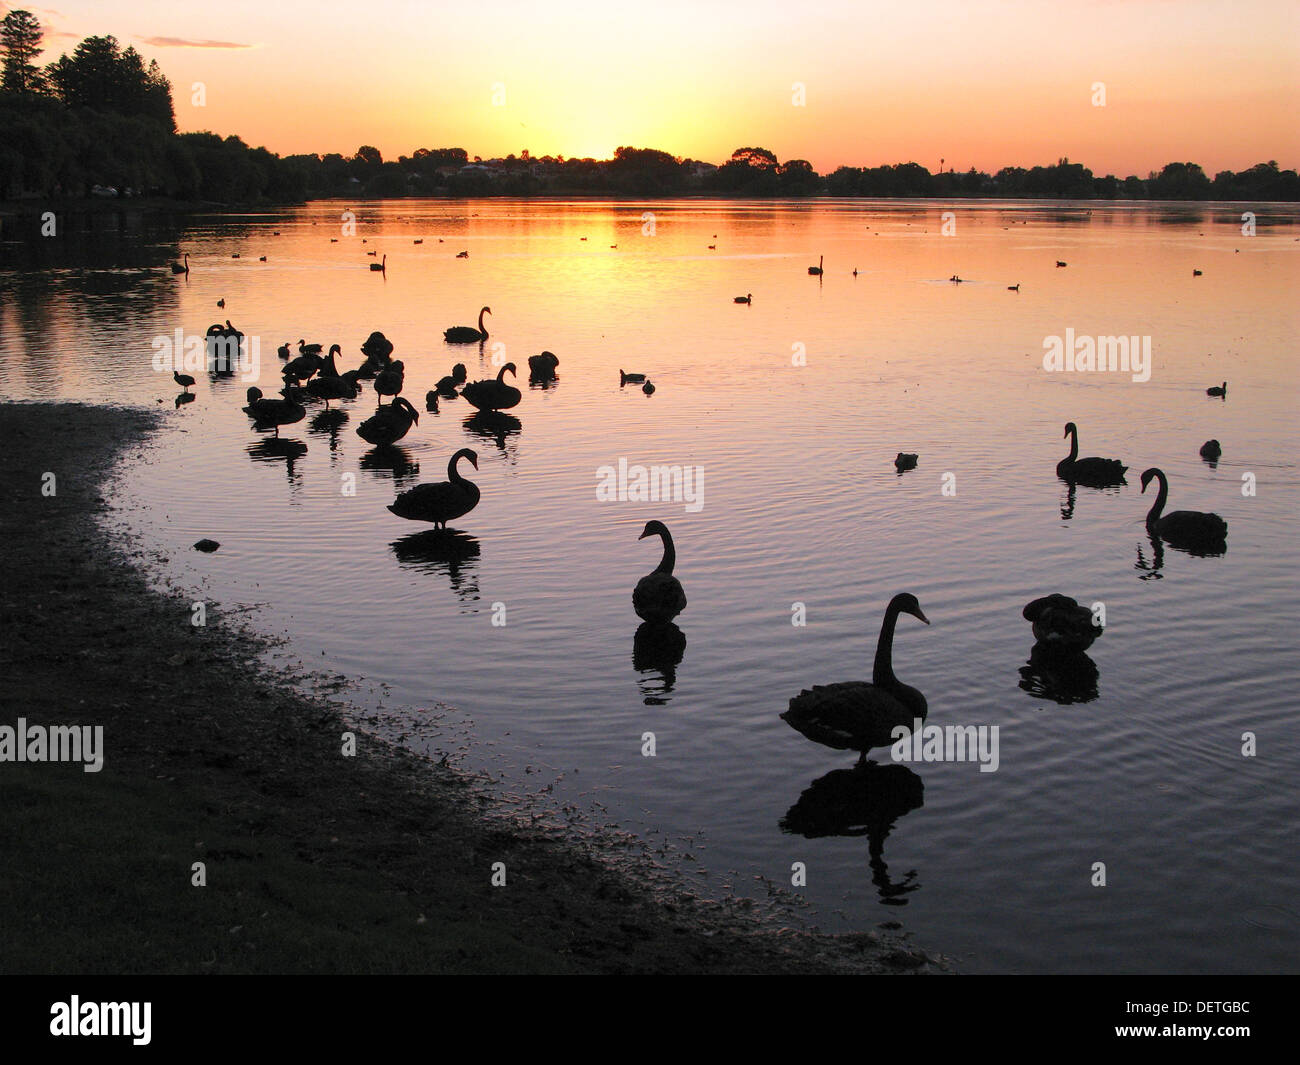 Waterfowl at sunset at Lake Monger in Perth, Western Australia. - Stock Image